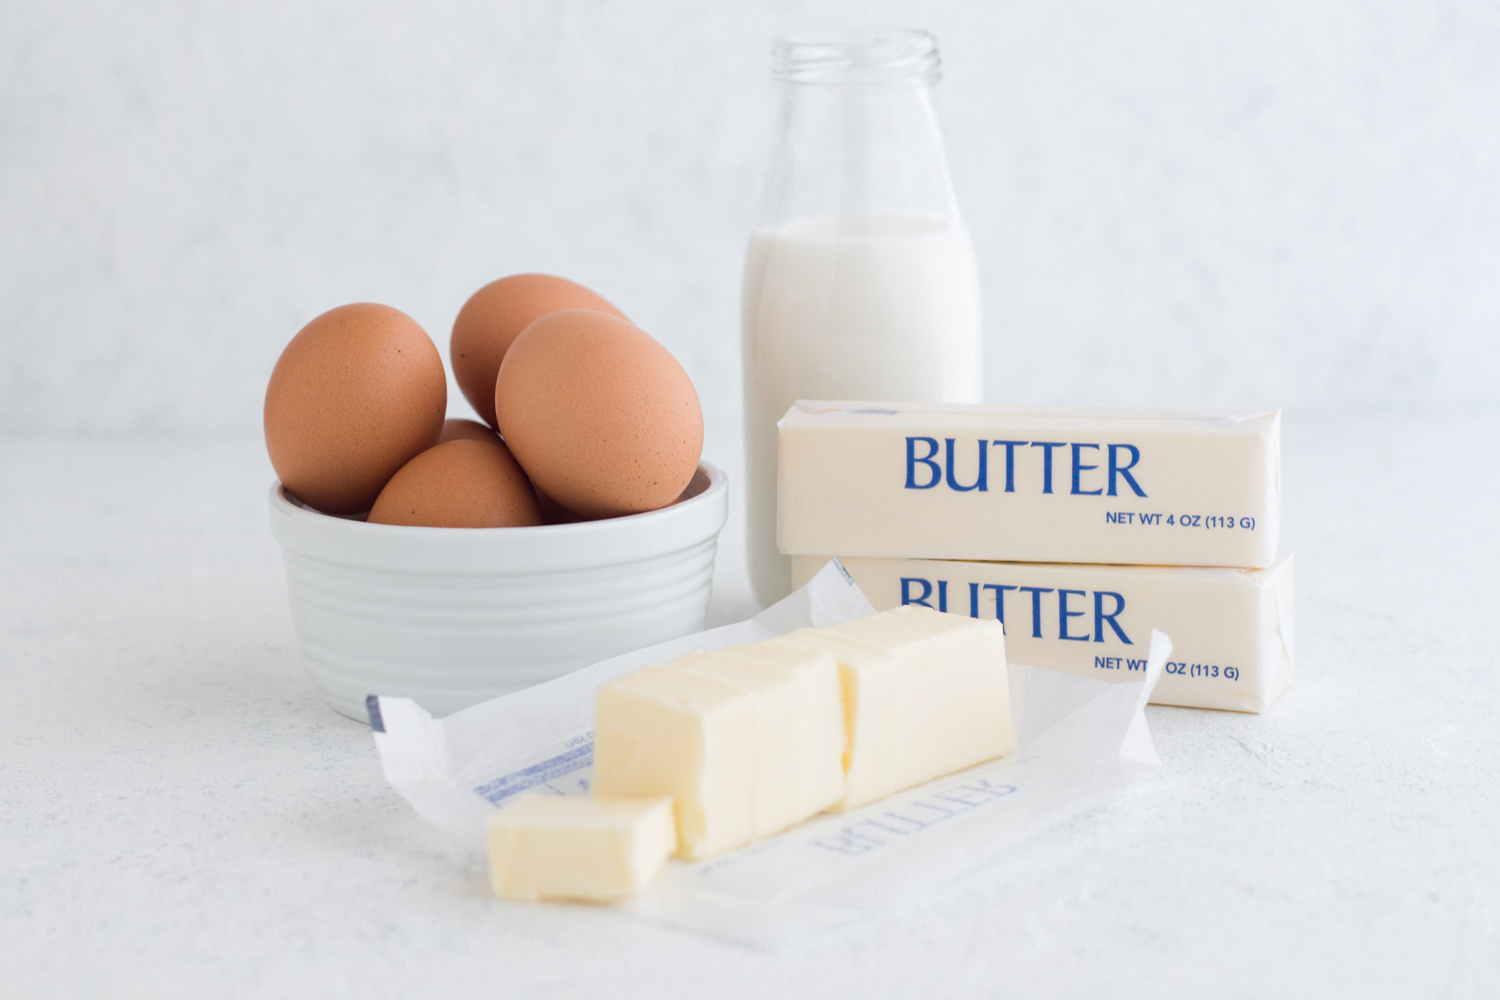 butter, brown eggs, and a glass of milk on a white surface